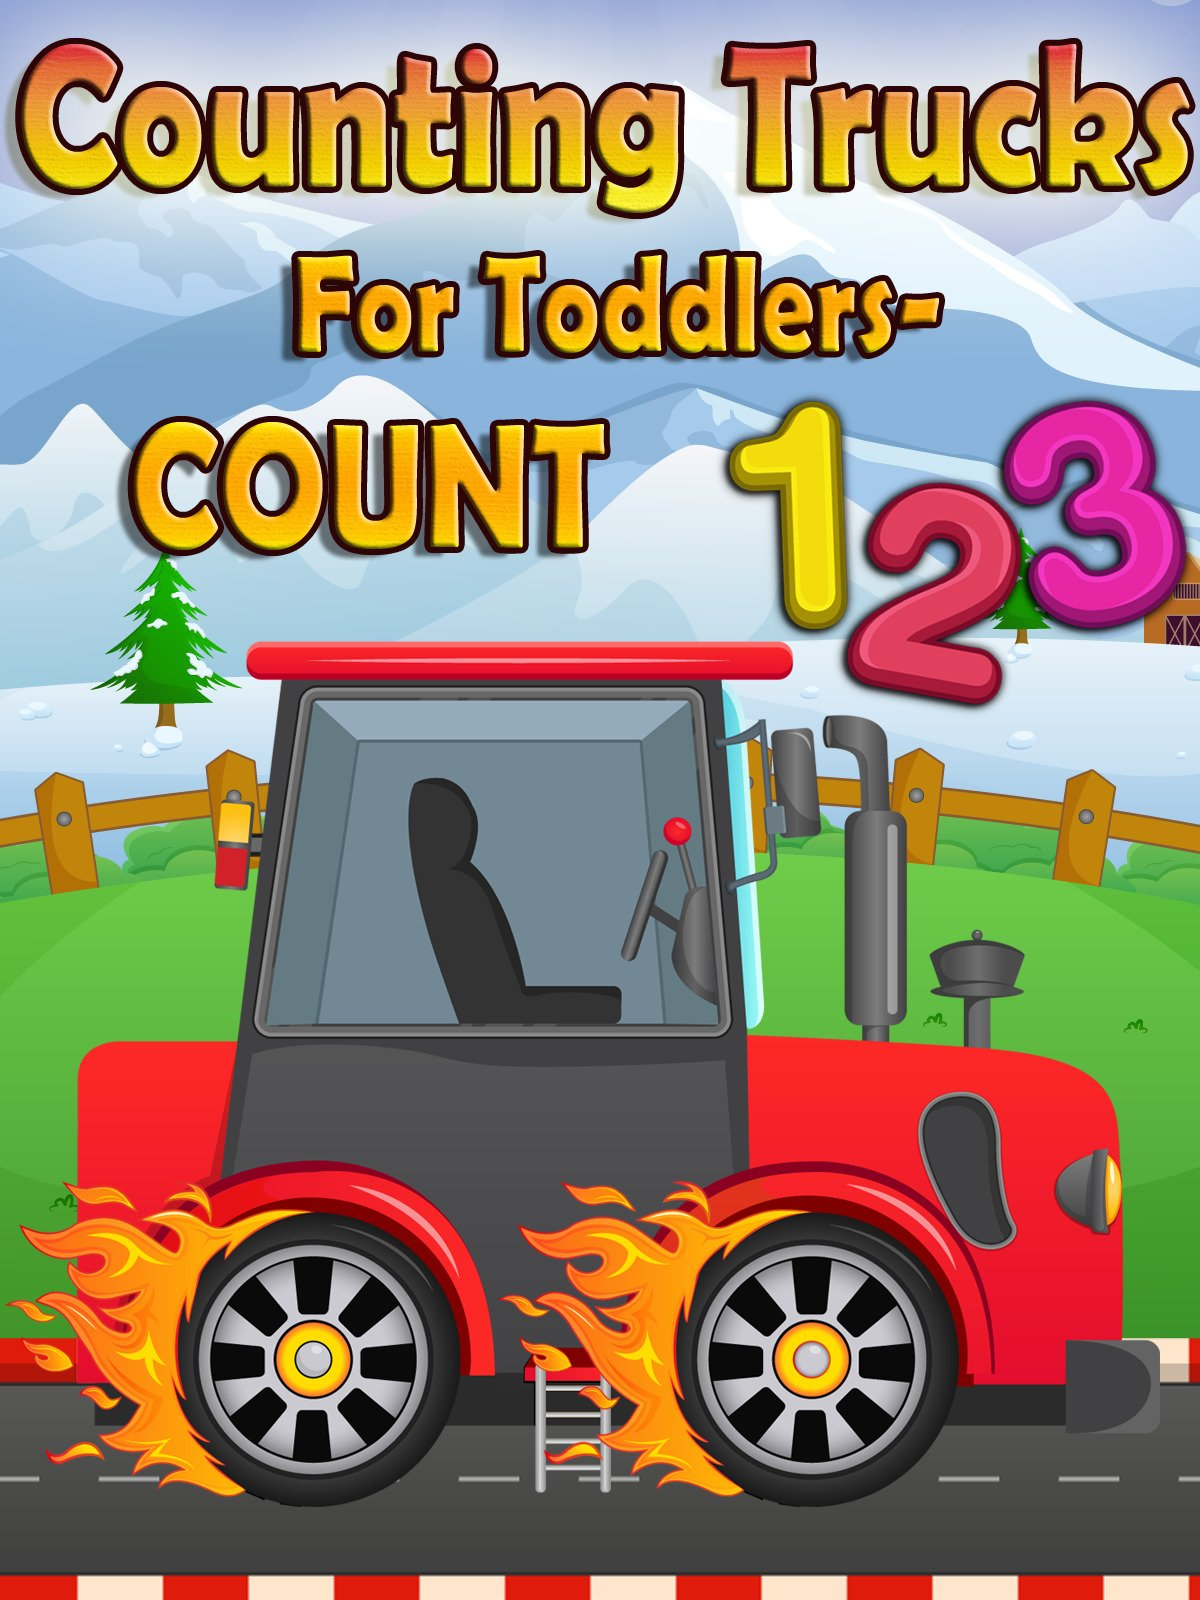 Counting Trucks For Toddlers- Count 123